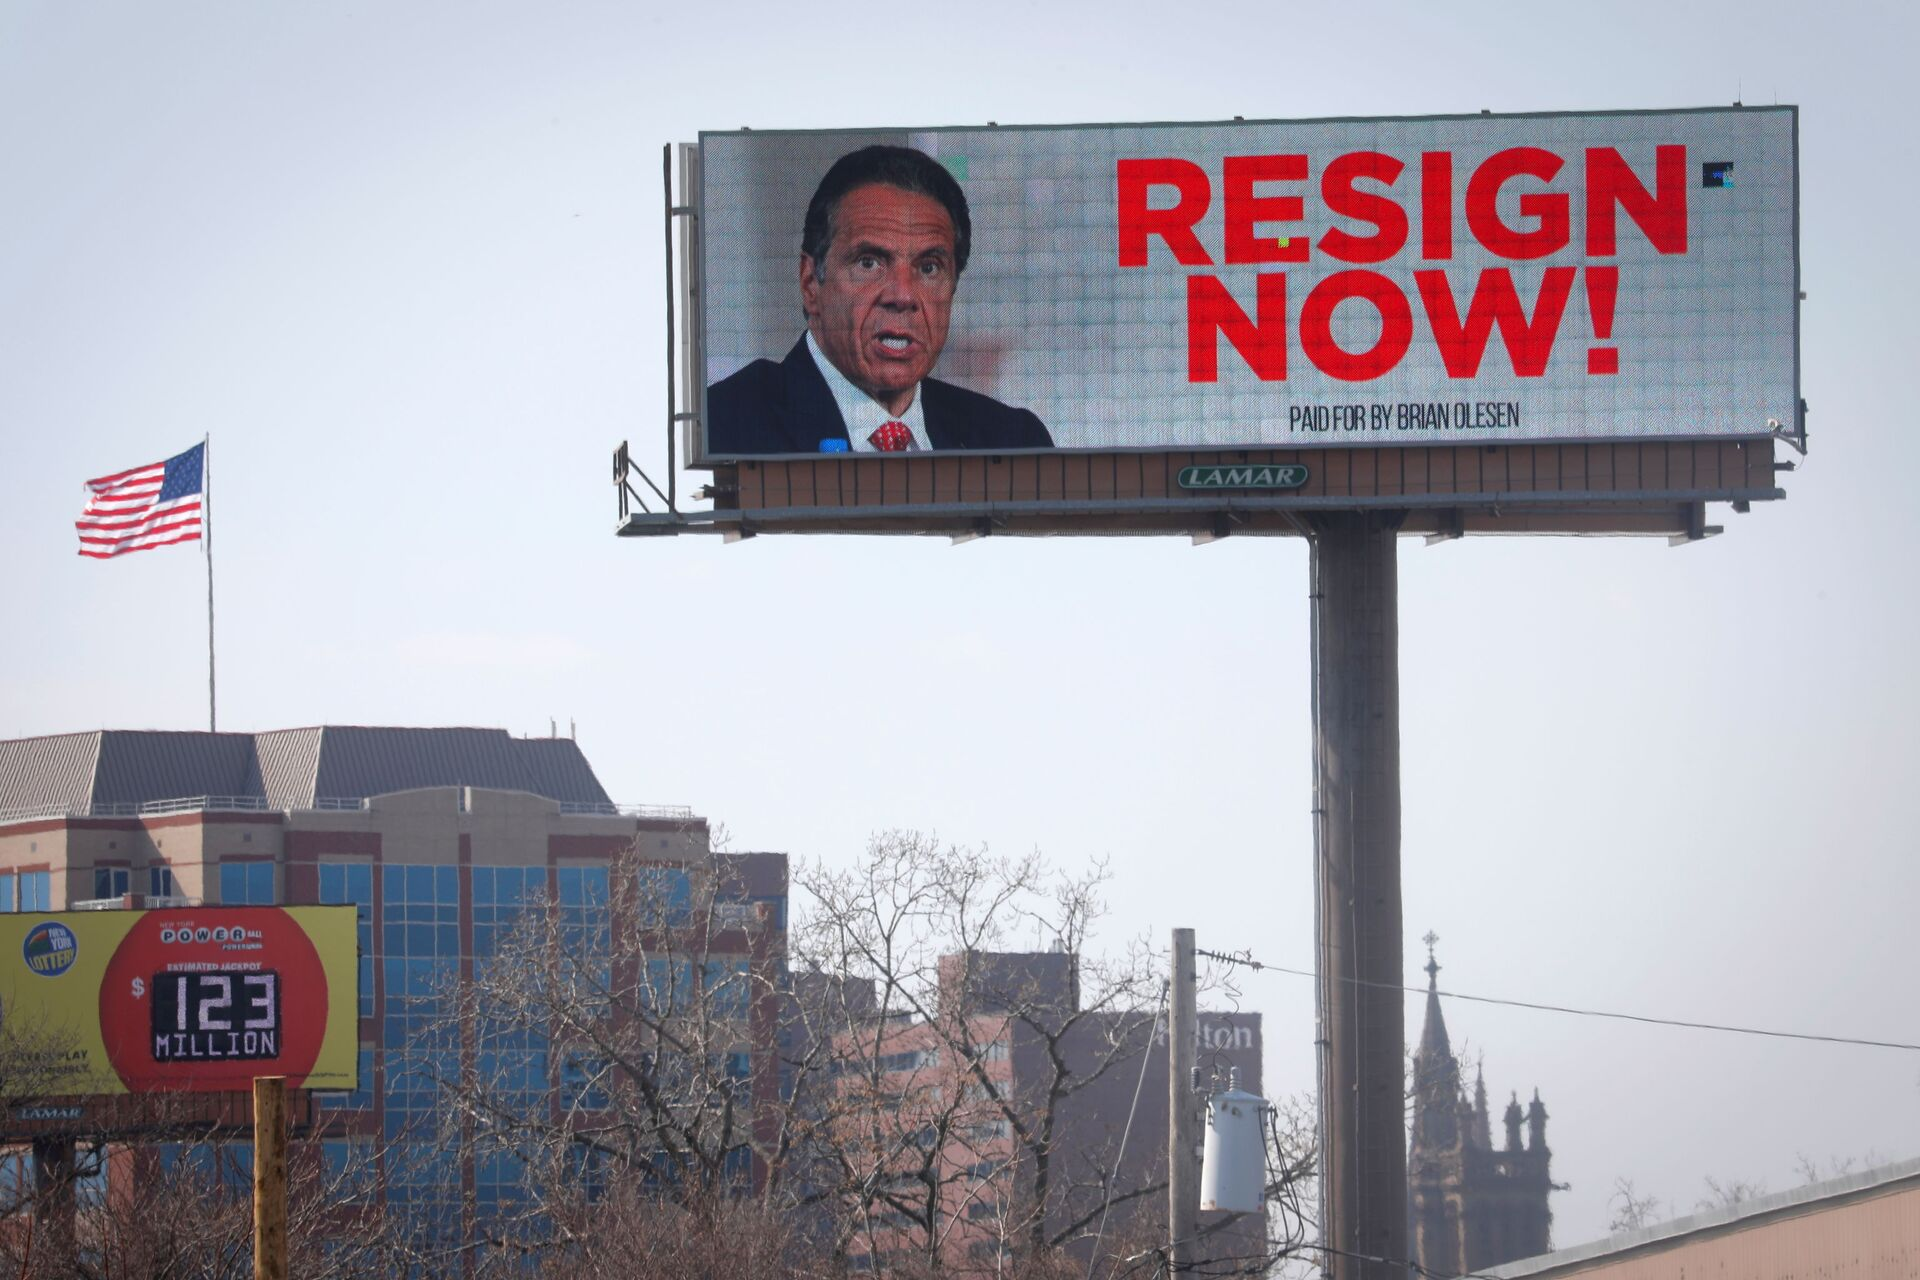 Electronic billboard displays message for New York Governor Cuomo to Resign Now in Albany - Sputnik International, 1920, 07.09.2021